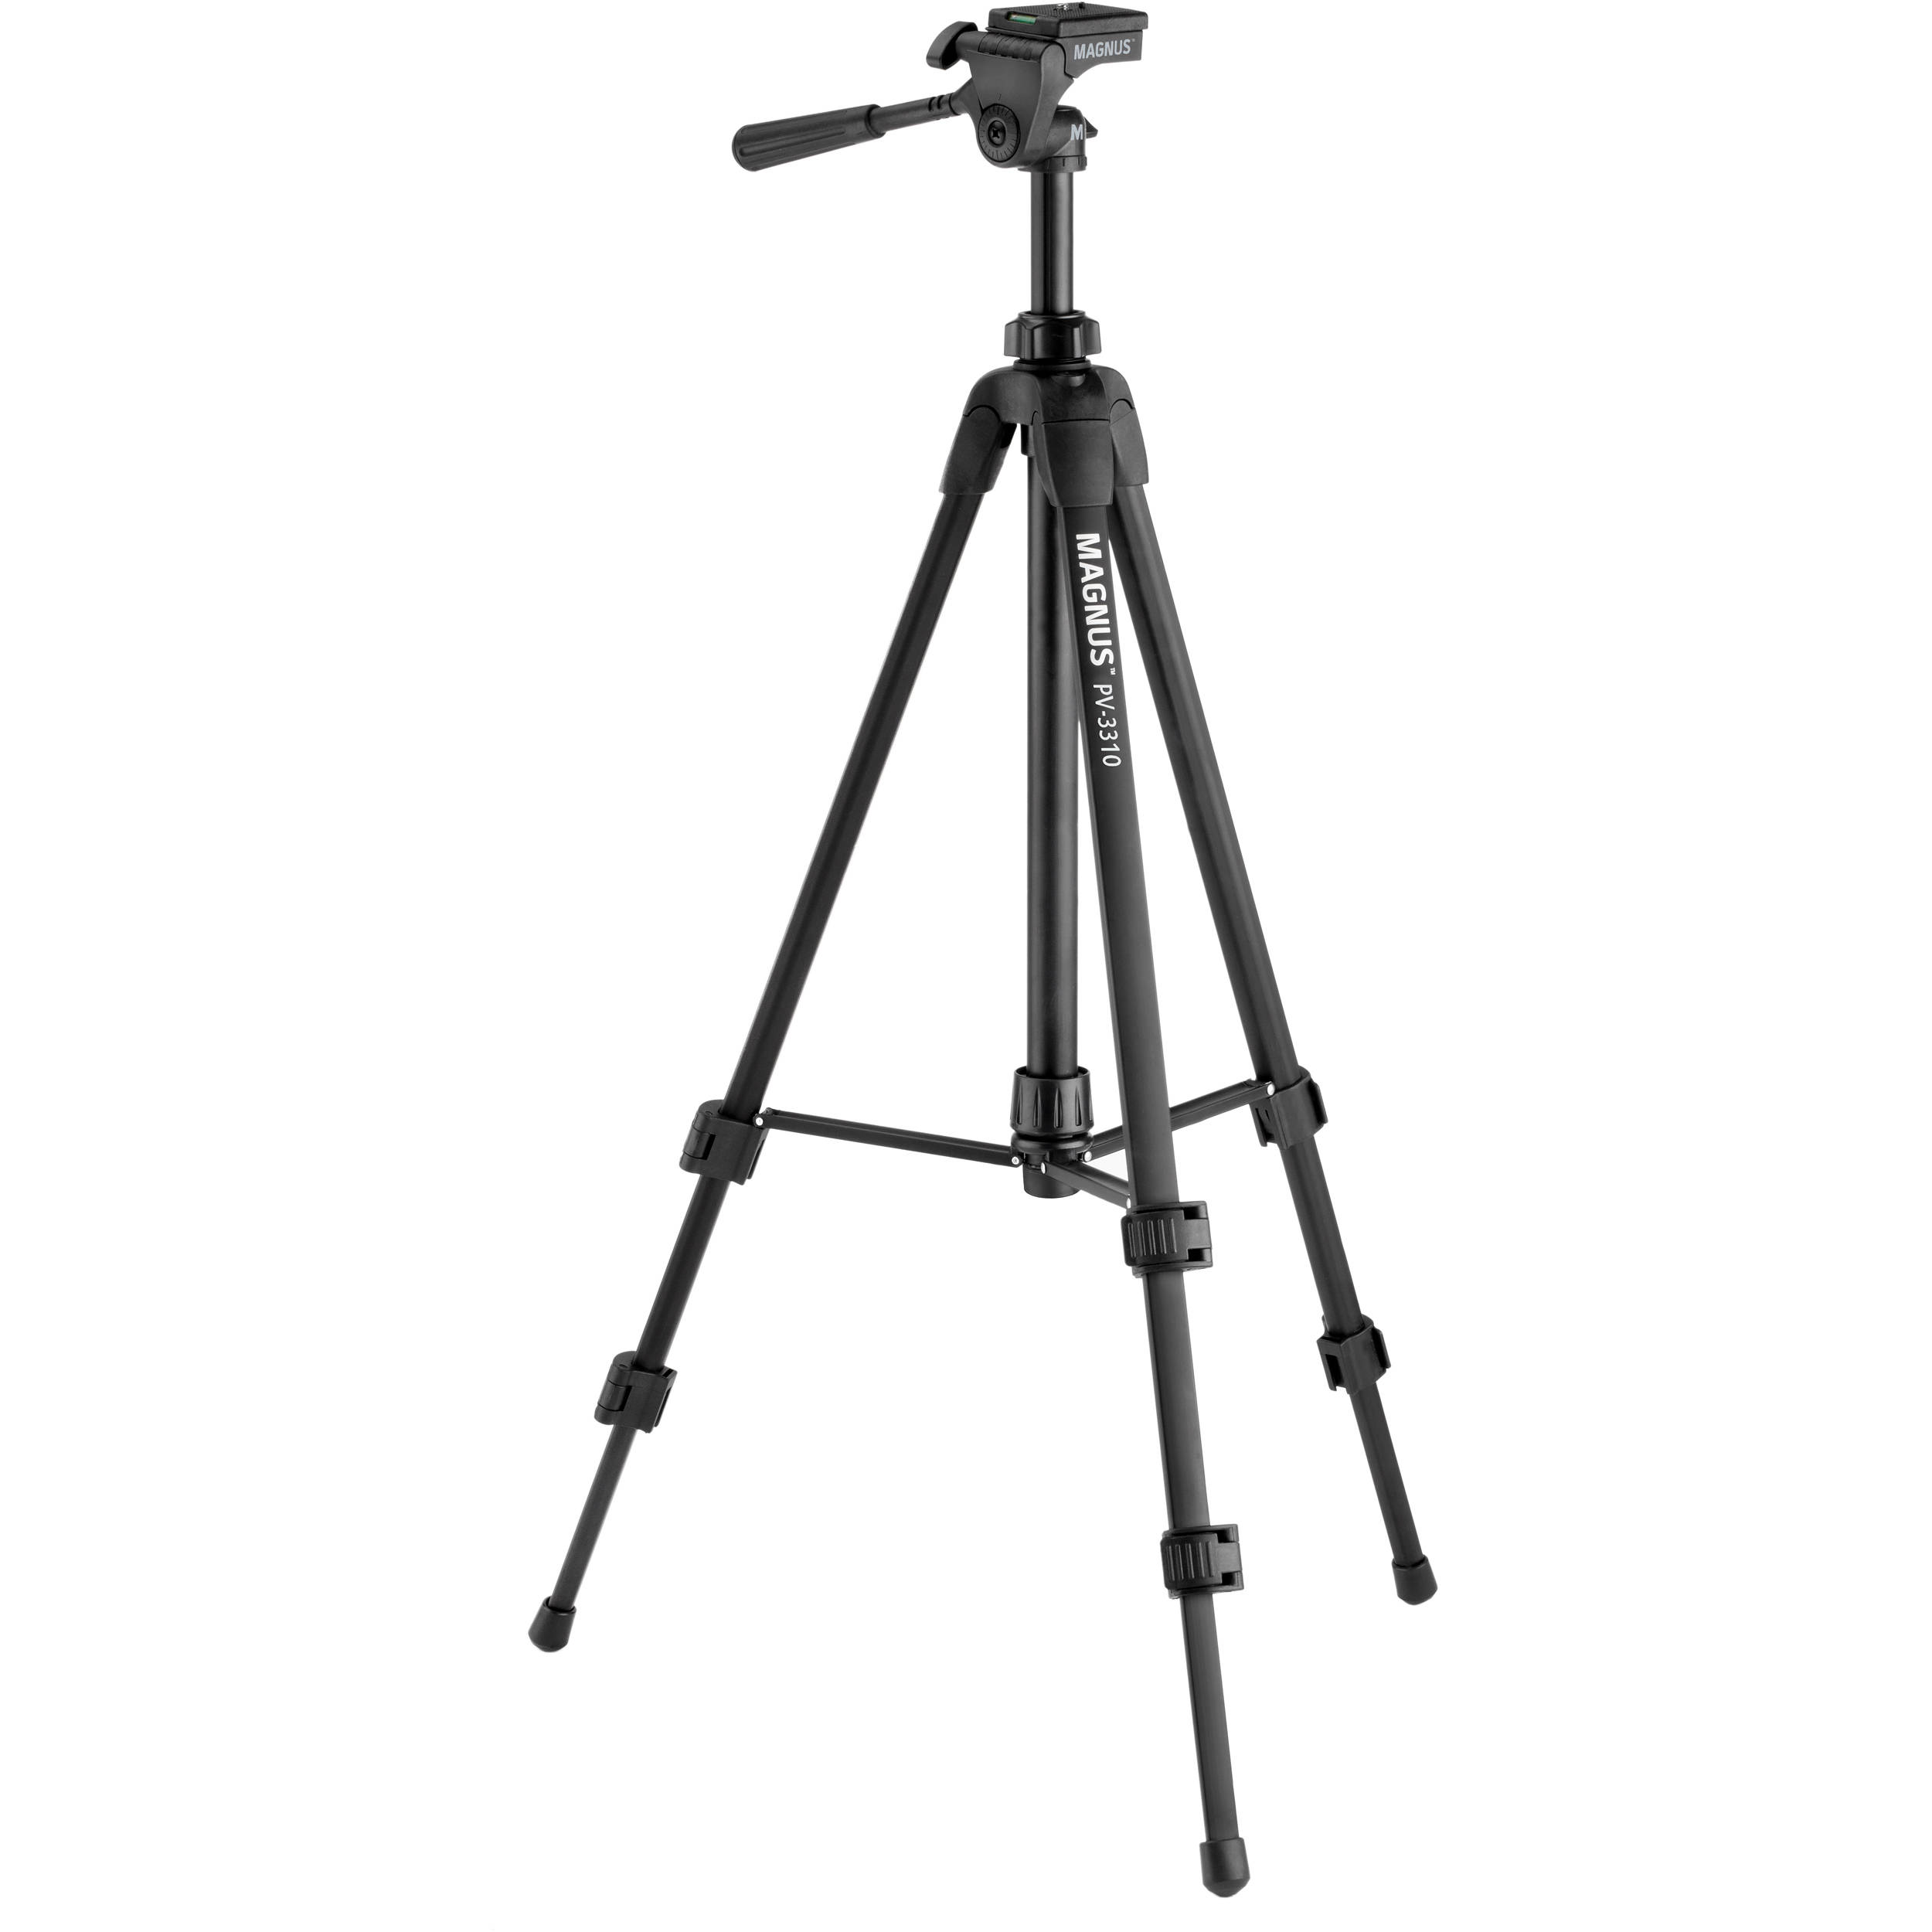 Tripod and camera photo